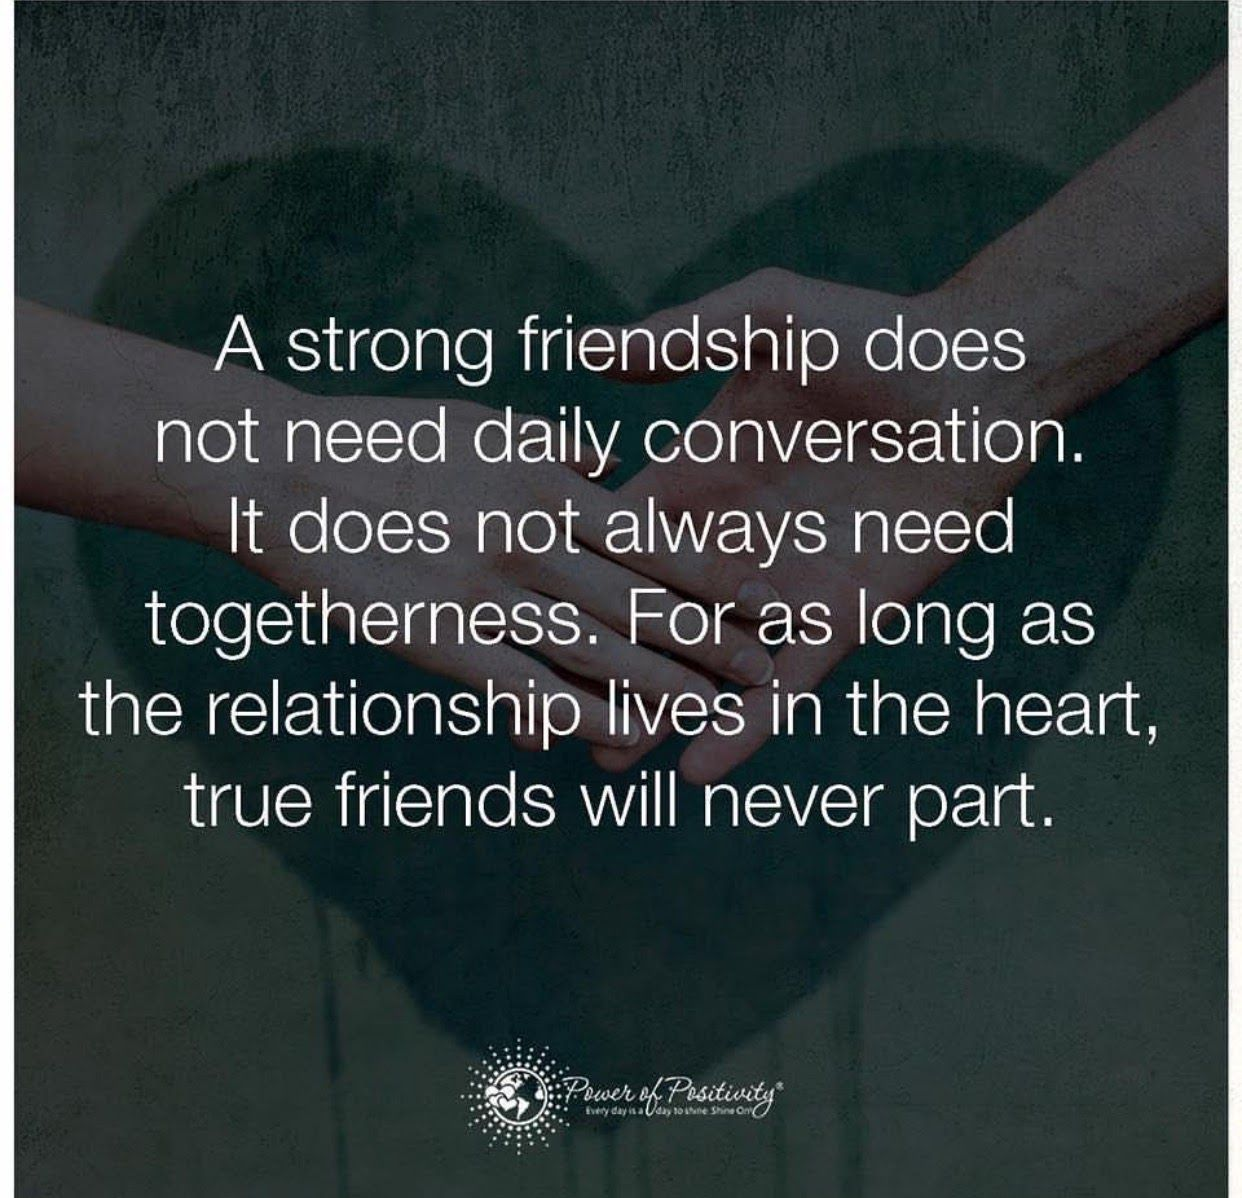 Quotes About Strong Friendship Pinmrs M V O On Ware Vriendskap Gedagtes  Pinterest  Ware F.c.